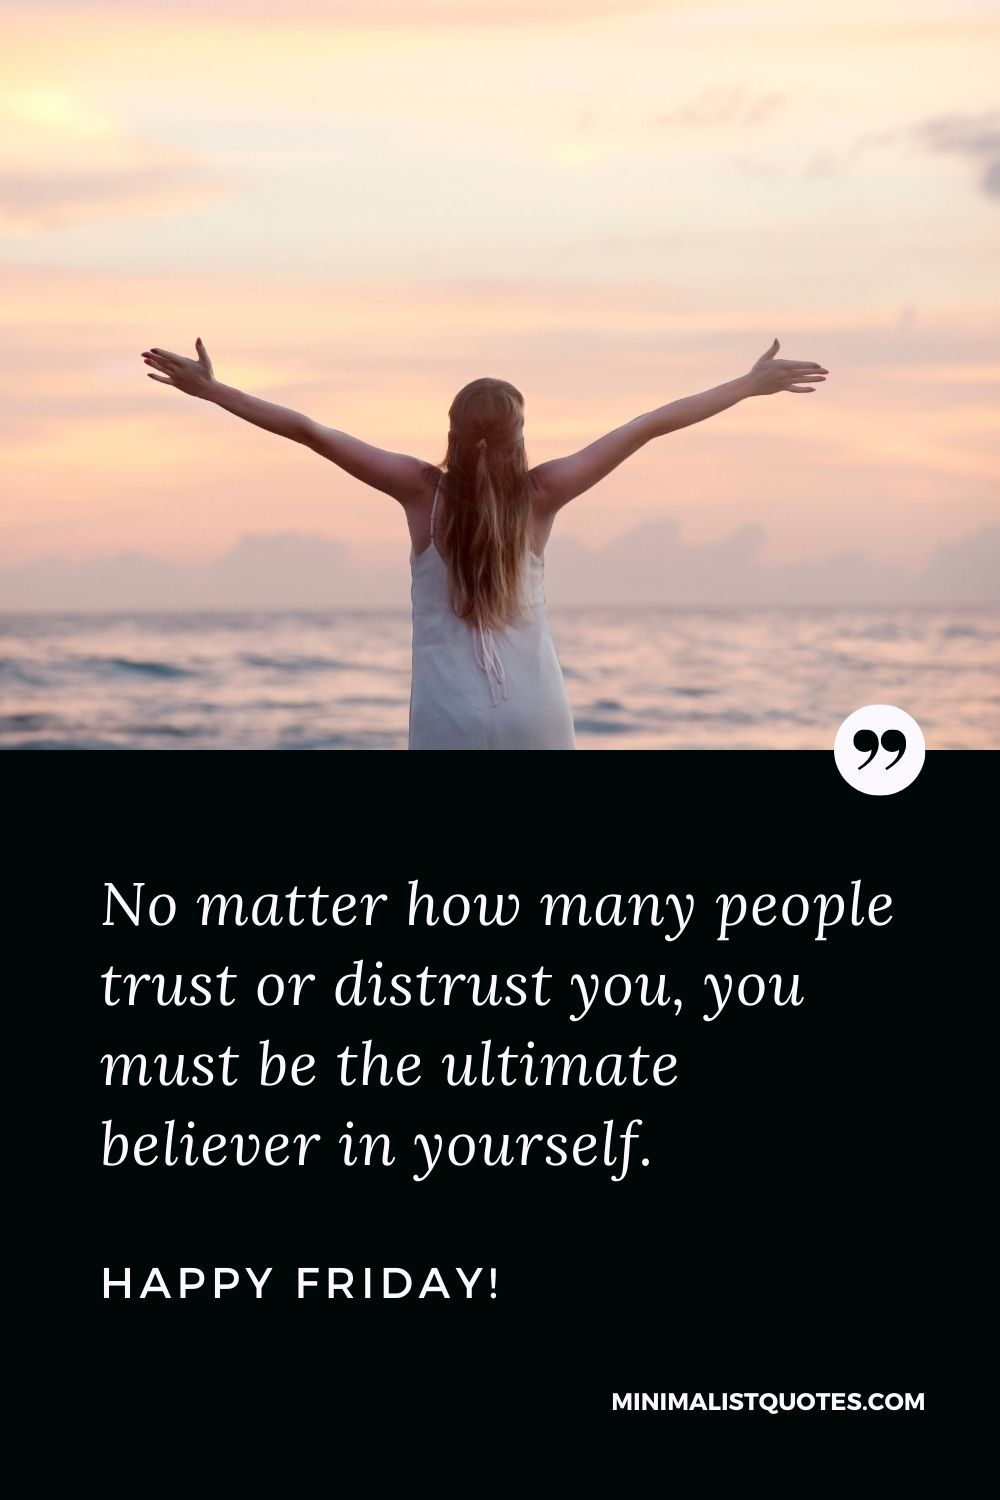 Friday Quote, Wish & Message With Image: No matter how many people trust or distrust you, you must be the ultimate believer in yourself. Happy Friday!